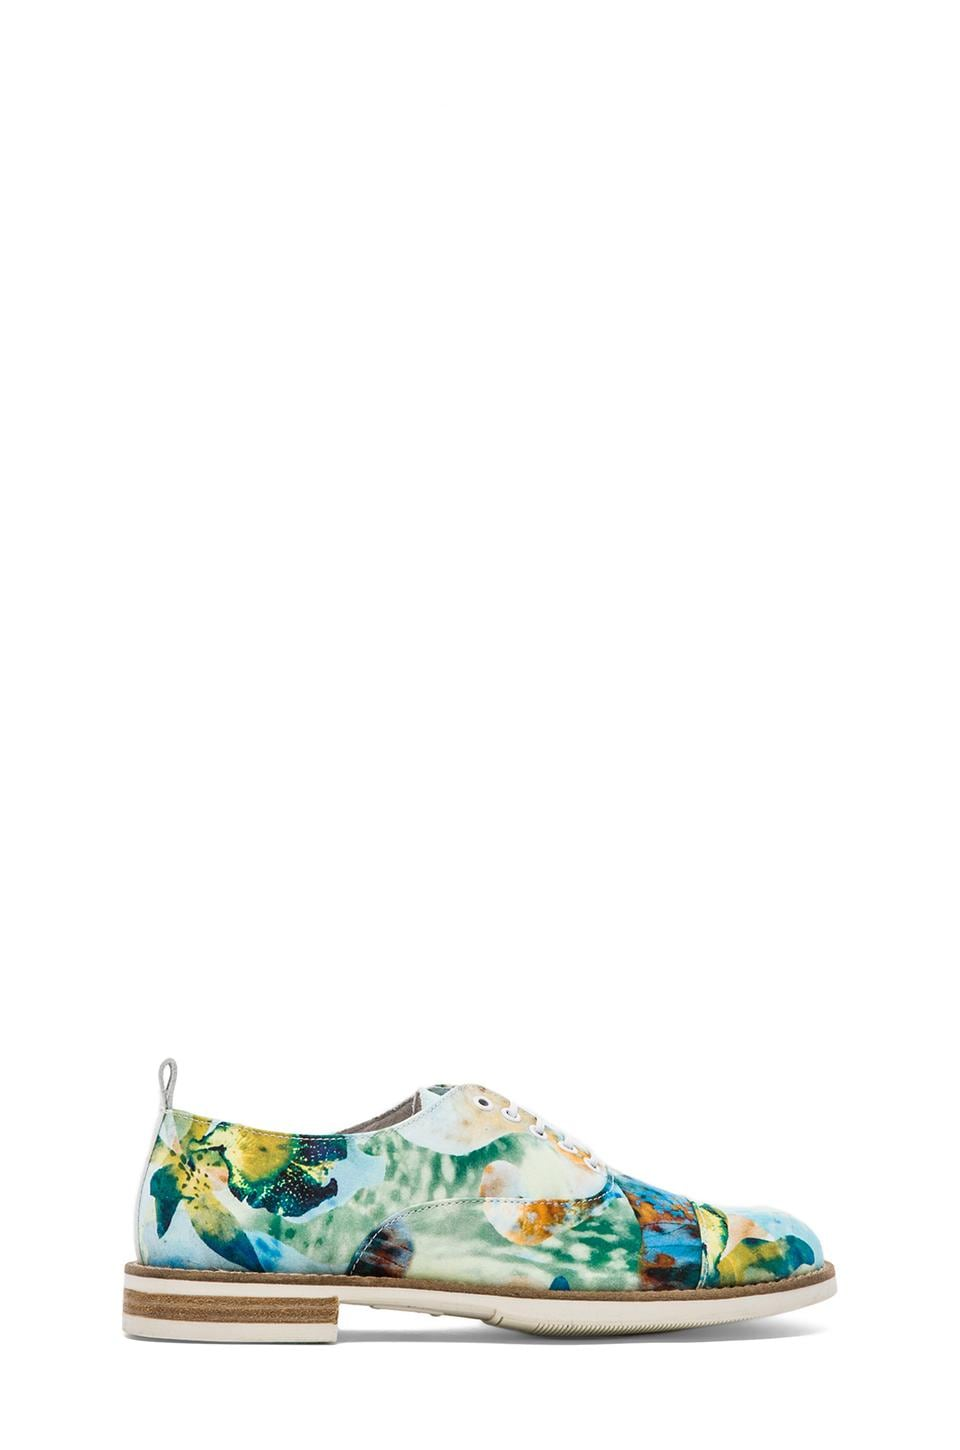 SWEAR Chaplin 1 in Blue Floral